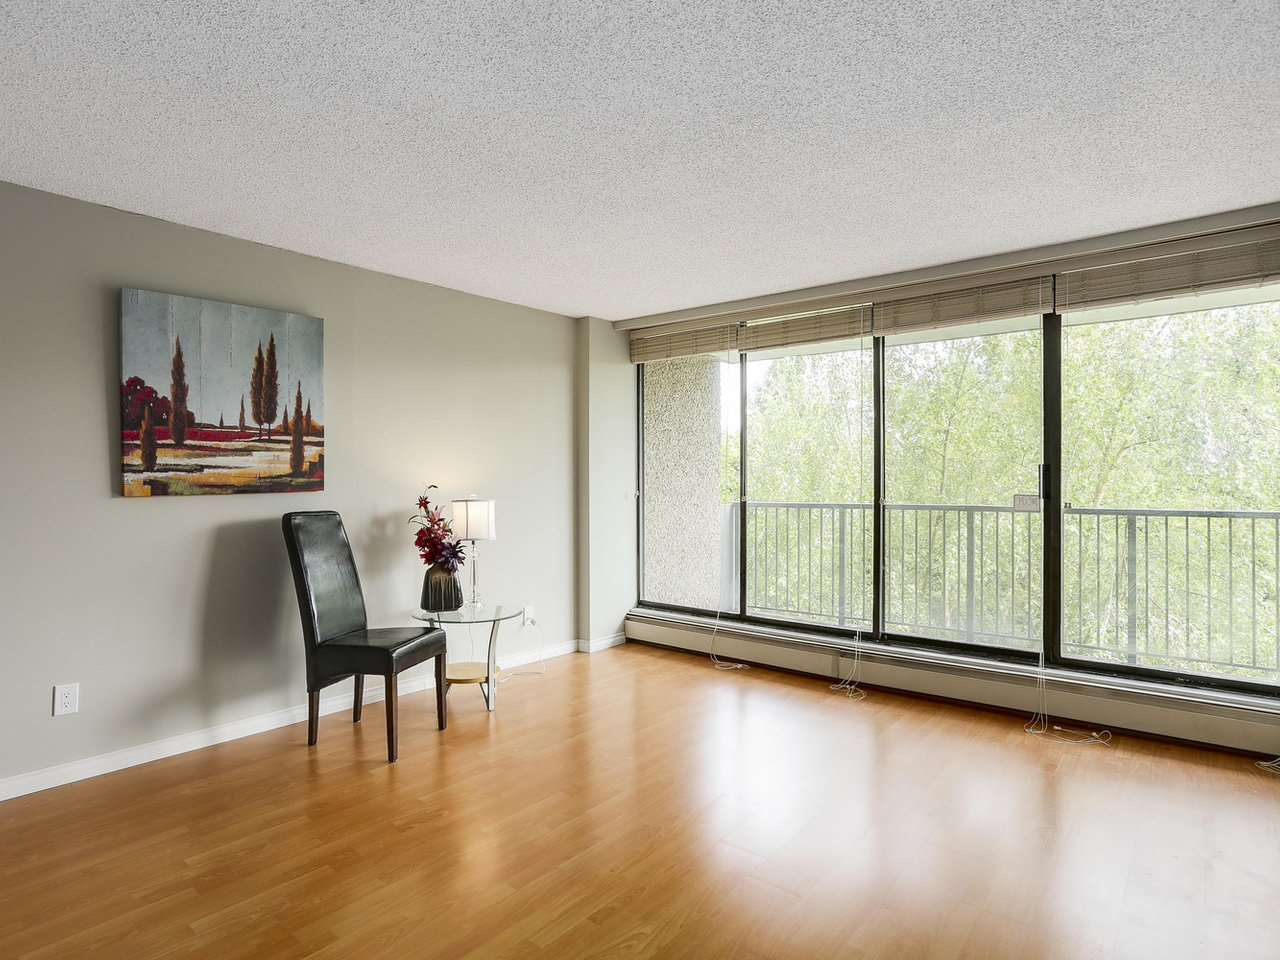 "Photo 2: 403 9320 PARKSVILLE Drive in Richmond: Boyd Park Condo for sale in ""MASTER GREEN"" : MLS® # R2175892"